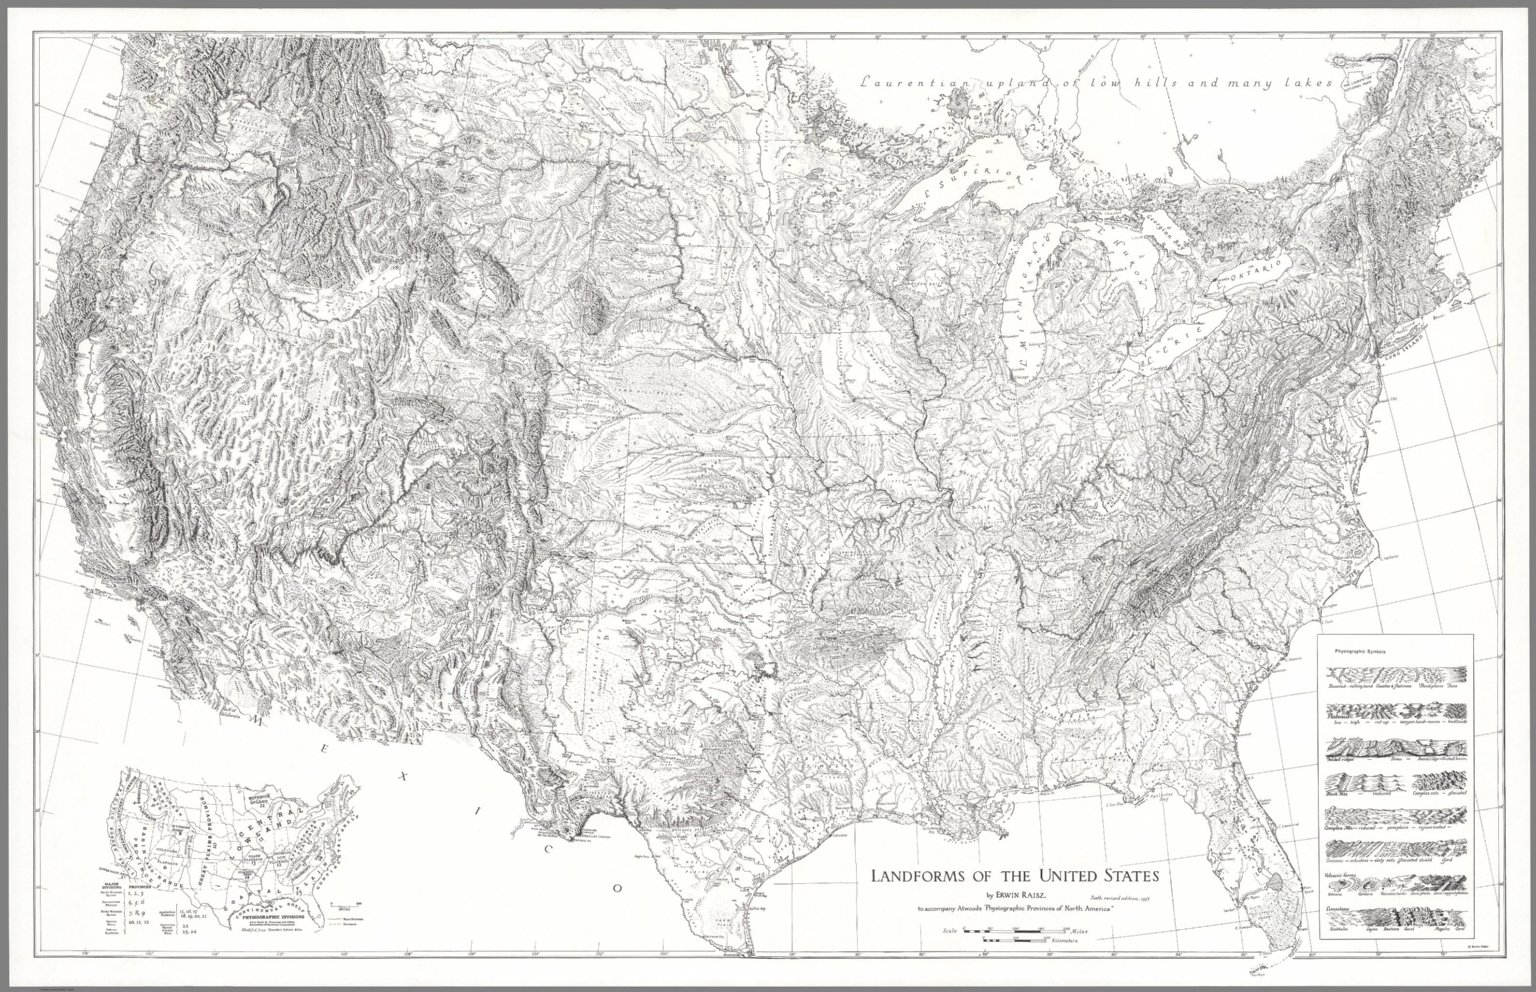 Images Of A Landform Map The United States on second lady of the united states, latitude of the united states, pipeline maps of the united states, navigable waters of the united states, thematic maps of the united states, economic regions of the united states, the government of the united states, longitude of the united states, northwest region of the united states, military uniforms of the united states, absolute location of the united states, railroad maps of the united states, six regions of the united states, the seal of the united states, different regions of the united states, river systems of the united states, the preamble of the united states, national seal of the united states, pacific region of the united states, blank page of the united states,